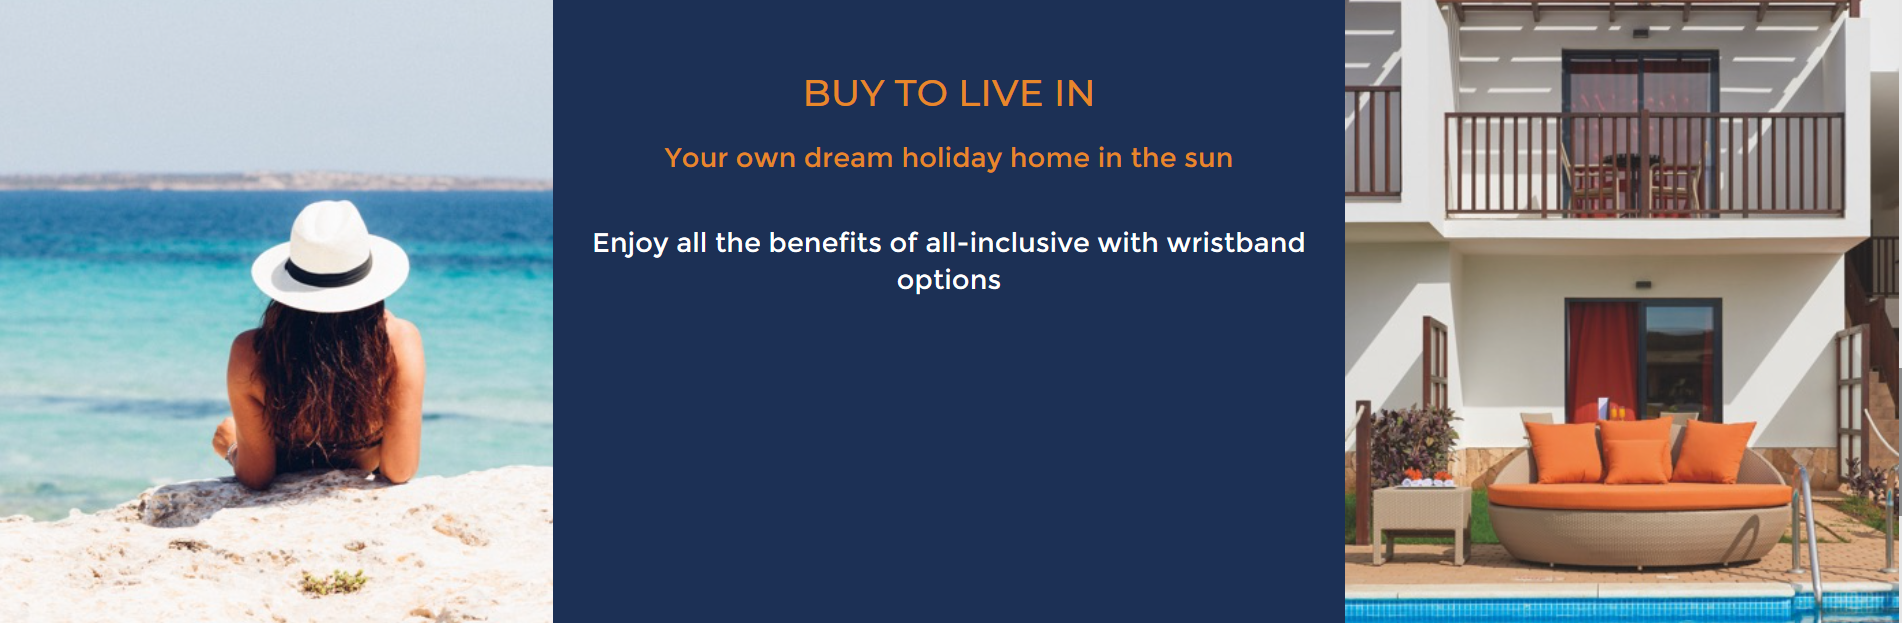 Buy to Live In Paradise